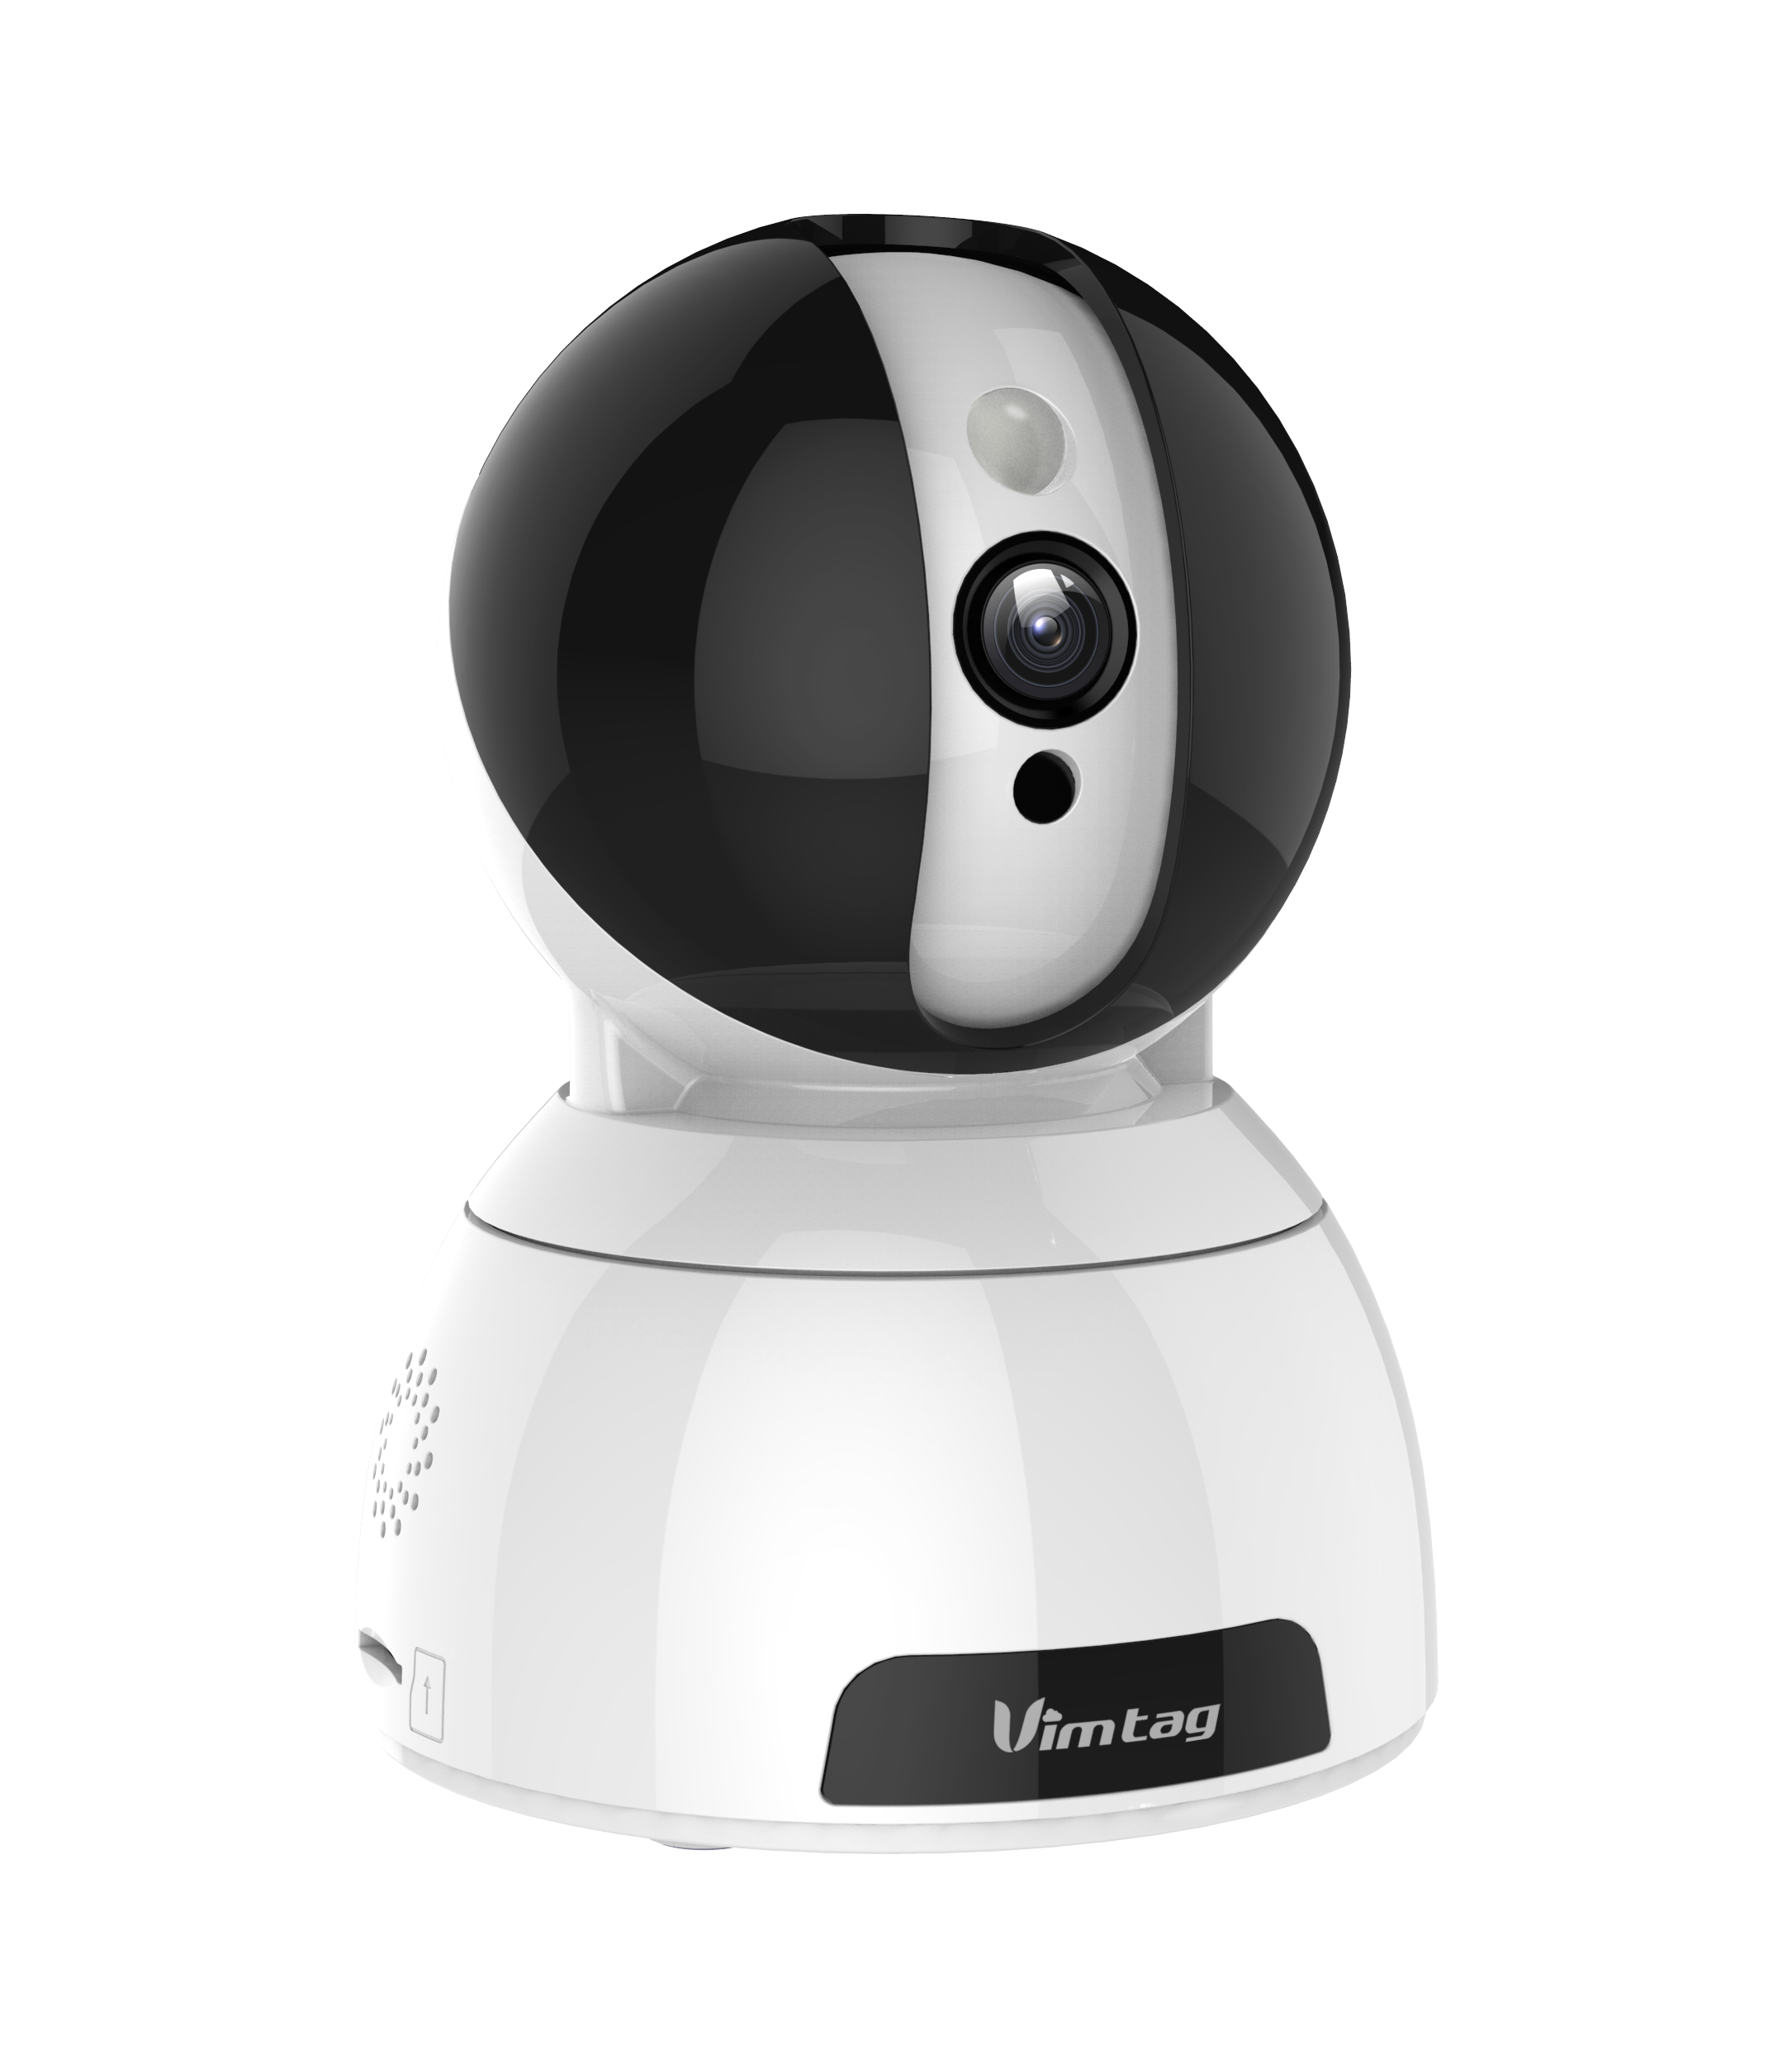 Pin by Vimtag Official on Vimtag Snowman Series Clould IP Camera ...